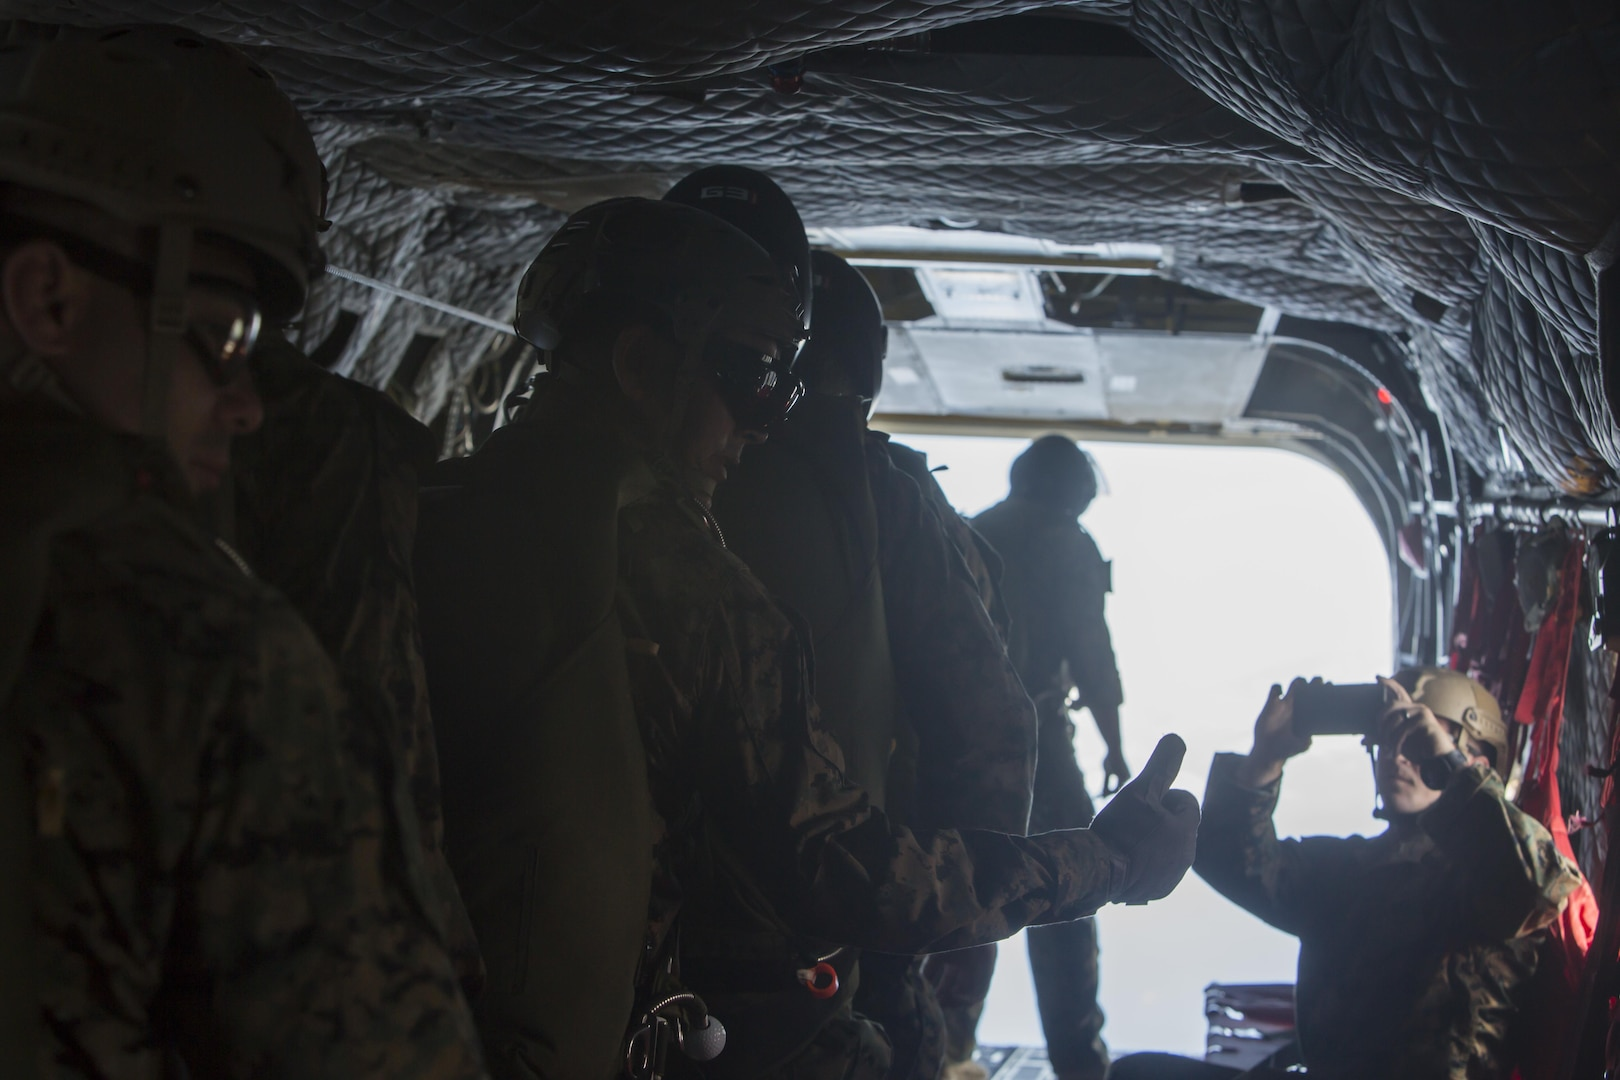 """SCHOFIELD BARRACKS – A Marine with 4th Force Reconnaissance Company gives the """"thumbs up"""" signal before conducting a high altitude airborne jump at Schofield Barracks, July 14, 2017. The Marines trained with U.S. Army Special Forces to maintain proficiency in completing static line and high altitude free fall airborne jumps. (U.S. Marine Corps photo by Lance Cpl. Isabelo Tabanguil)"""